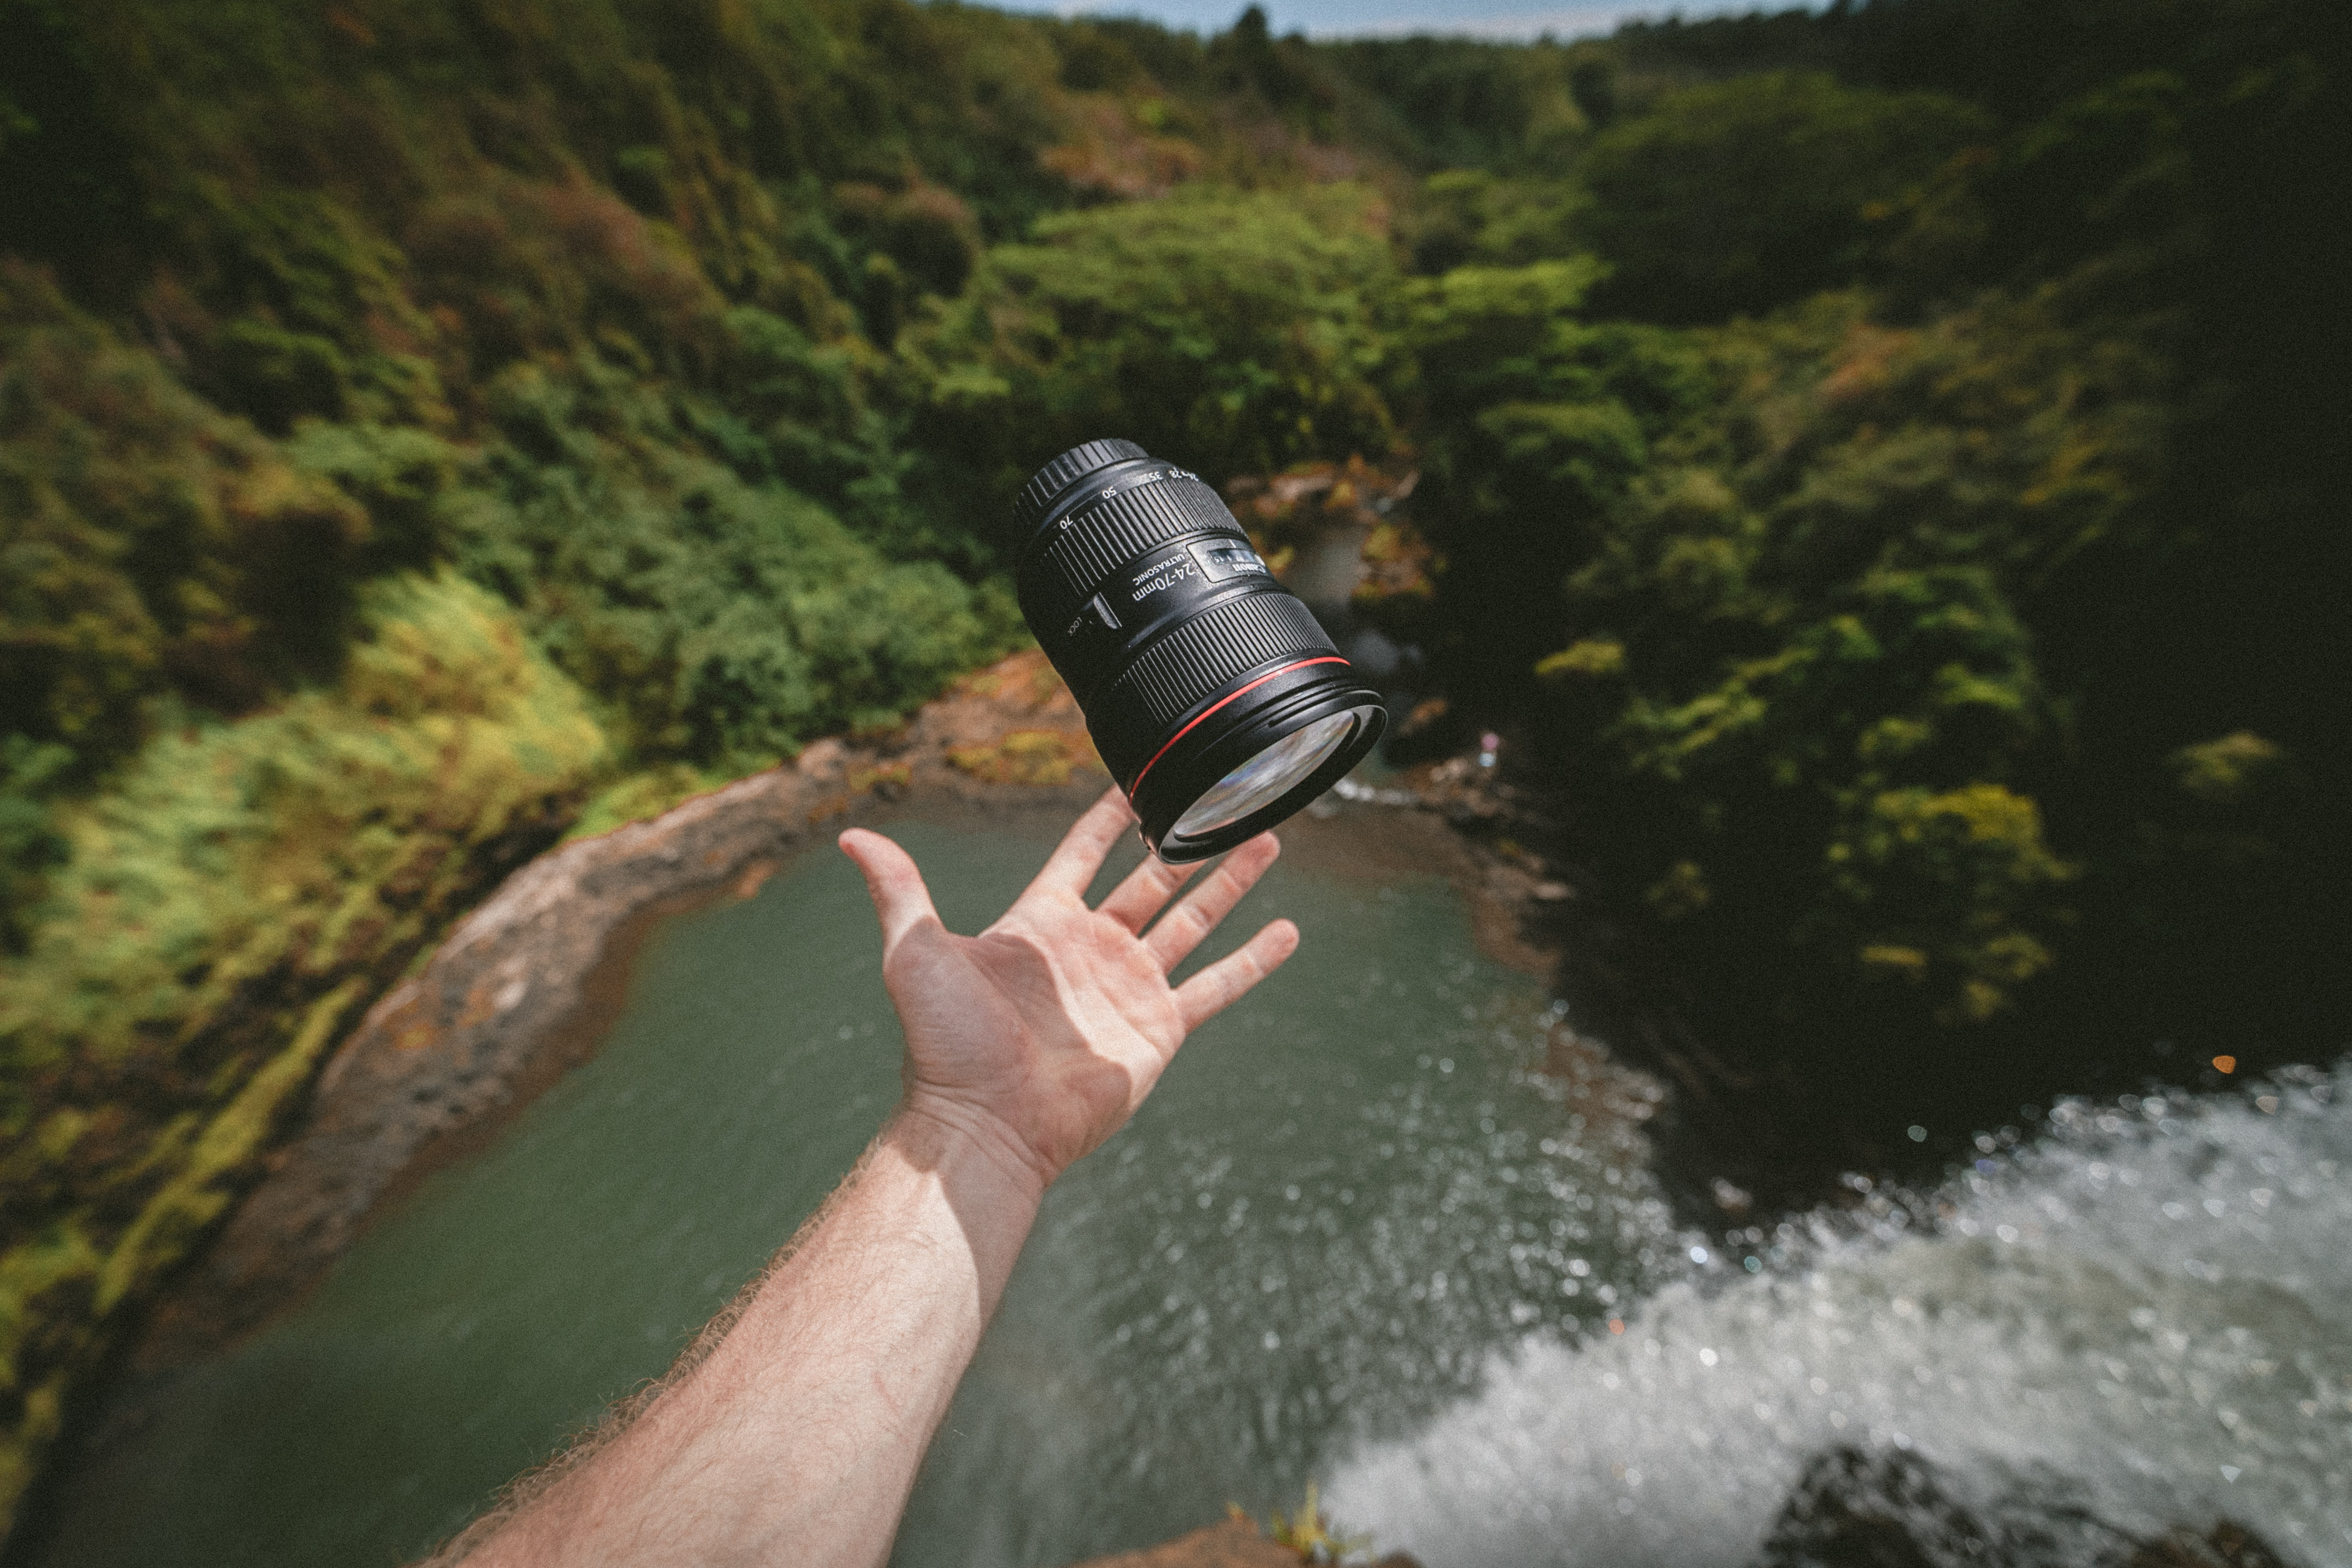 A man throwing a zoom lens up in the air over a tall waterfall